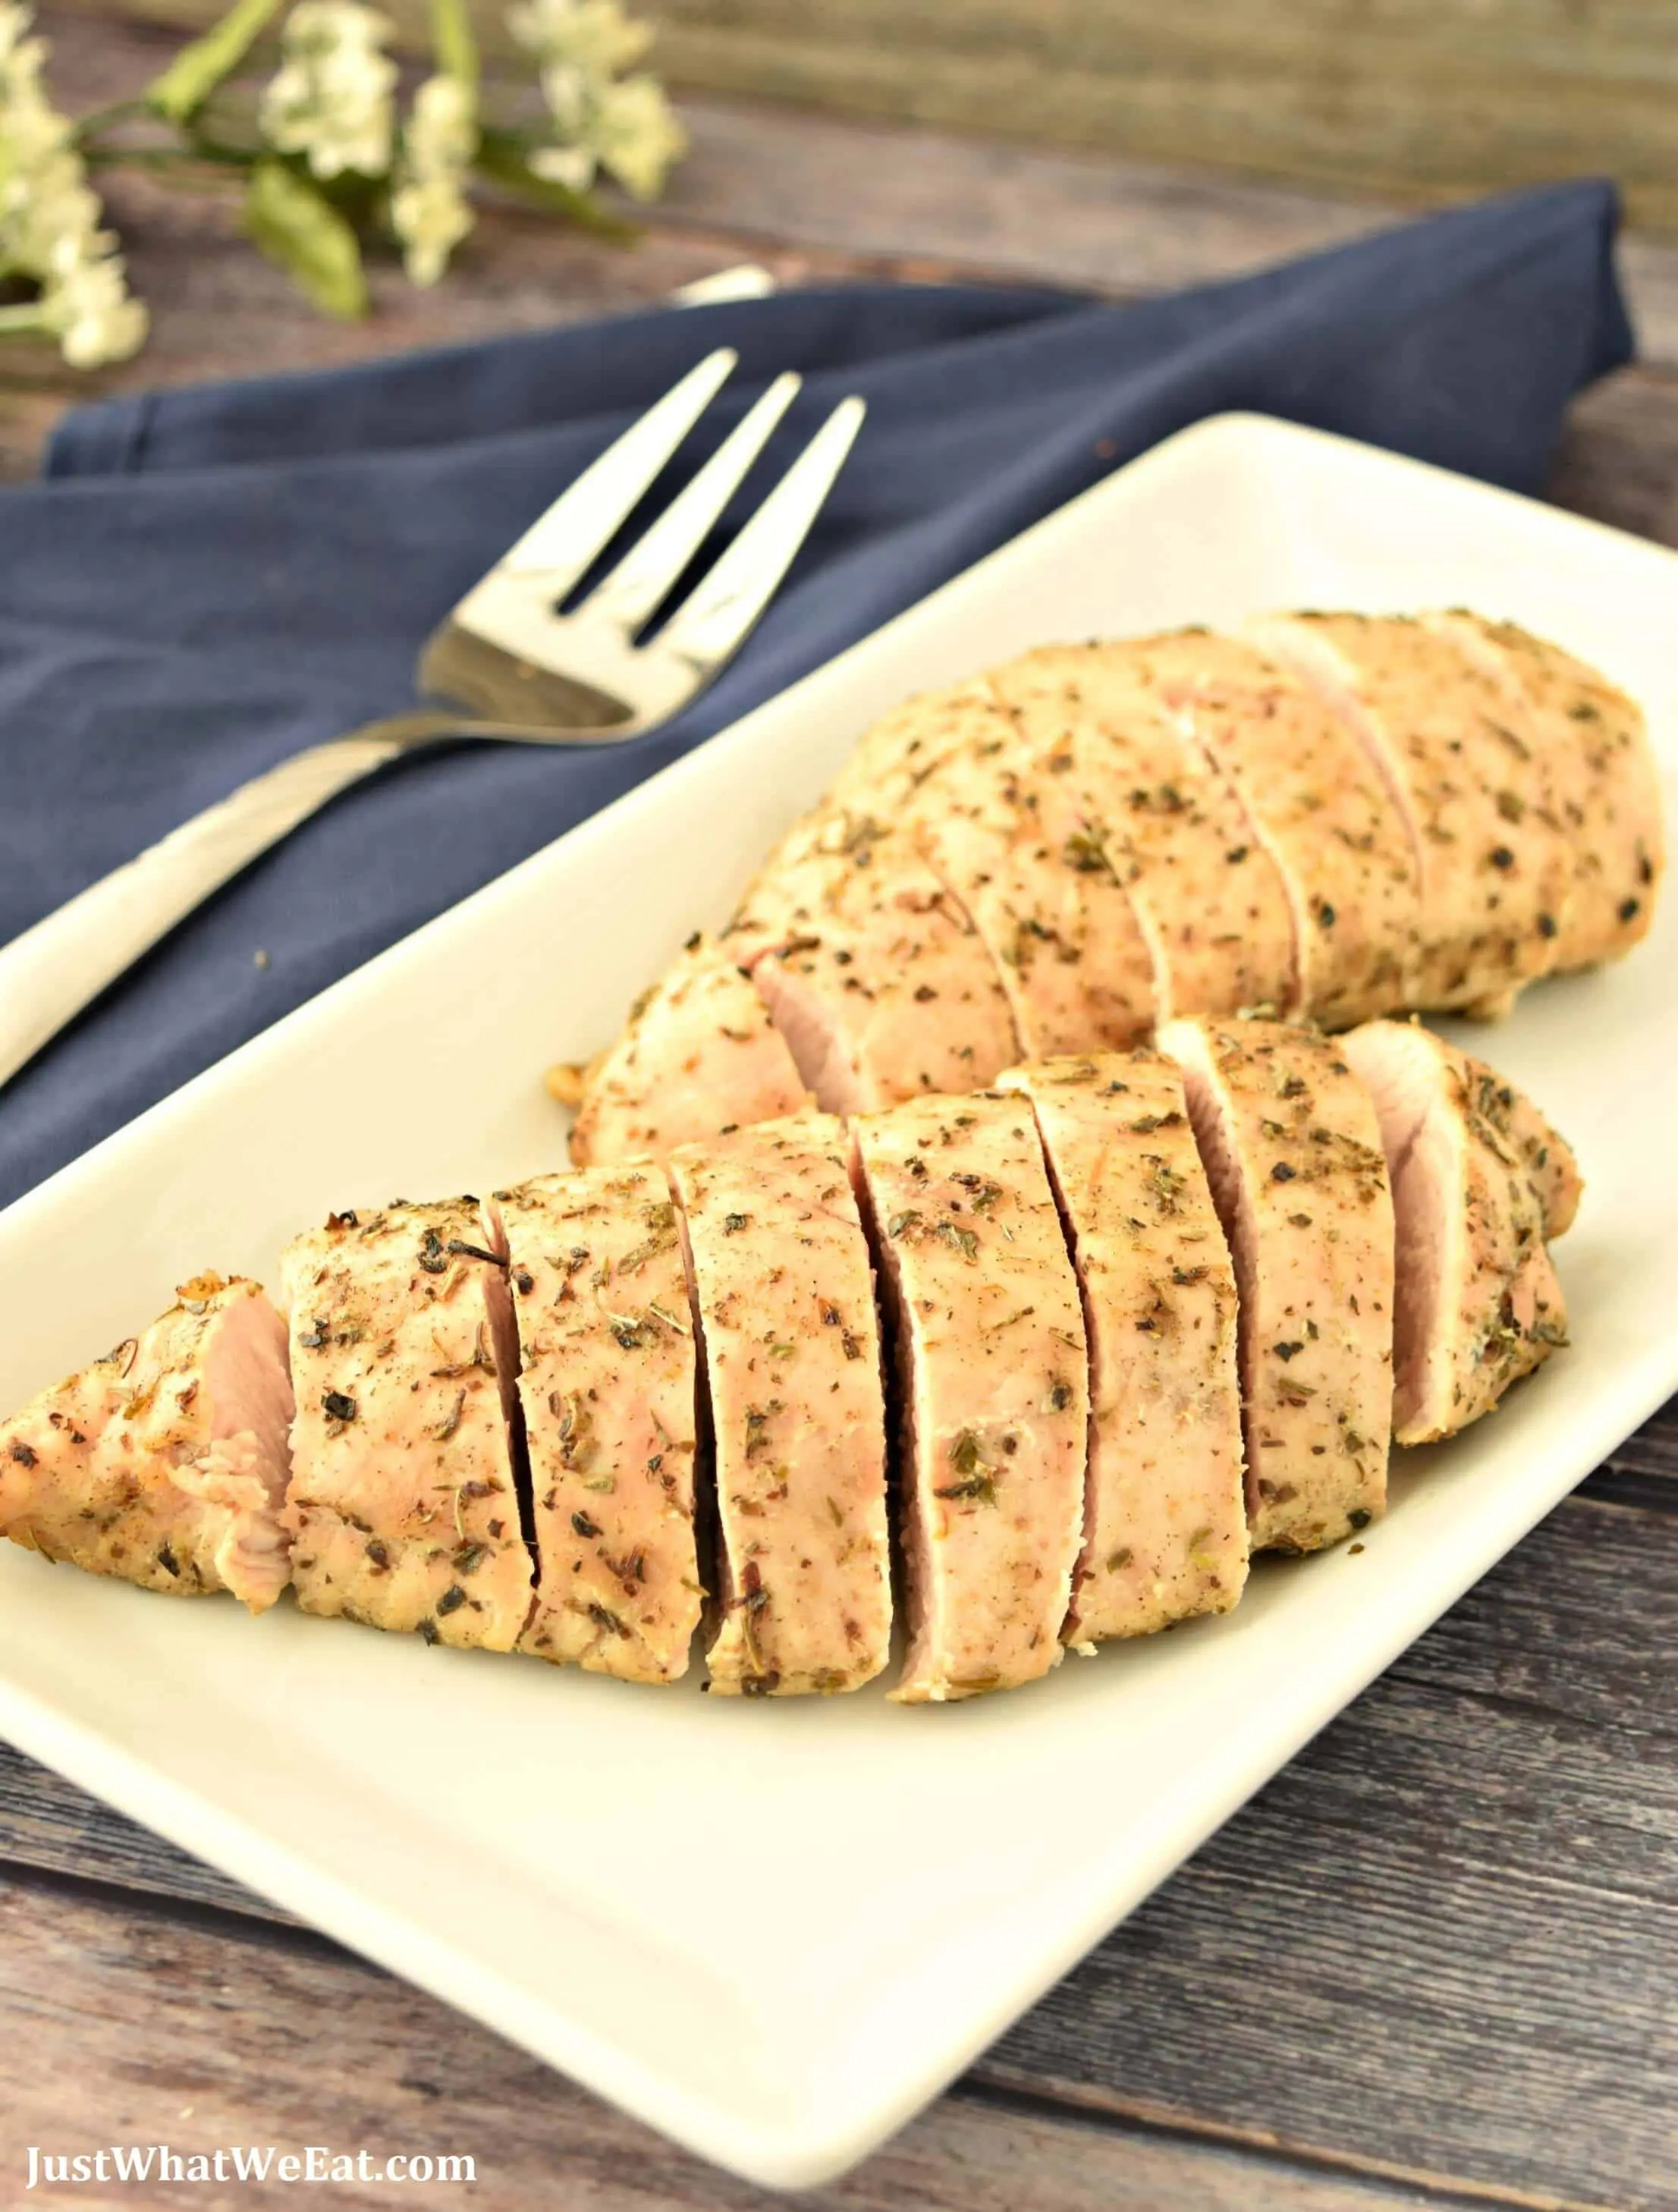 Oven Roasted Turkey Tenderloin - Gluten Free, Dairy Free